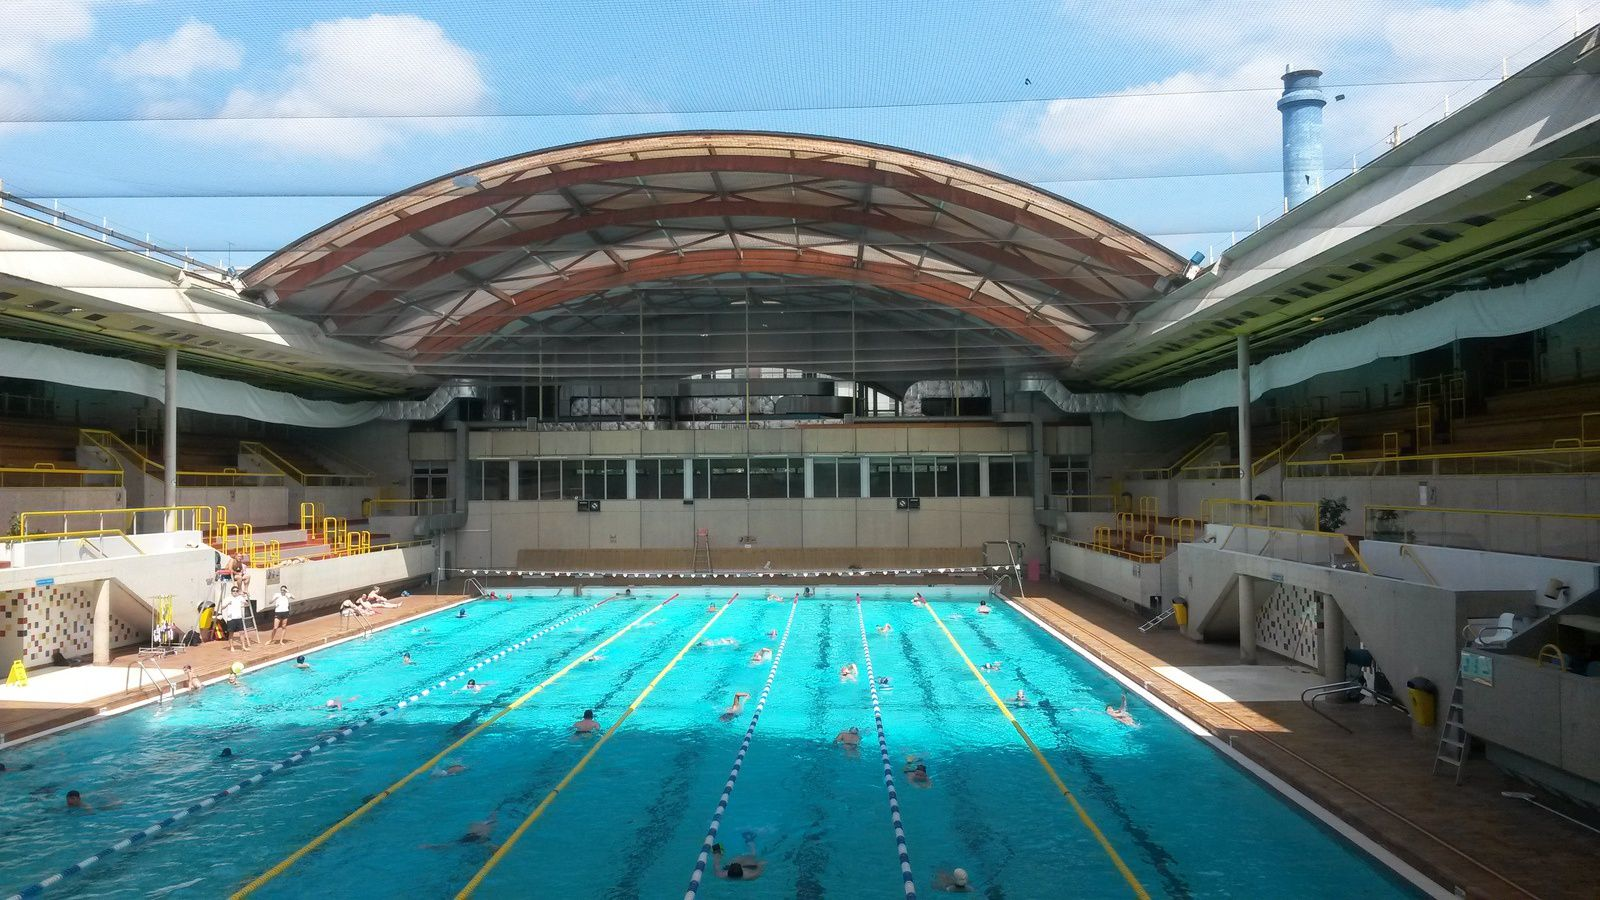 Pool talk a dane in france for Piscine 50m paris